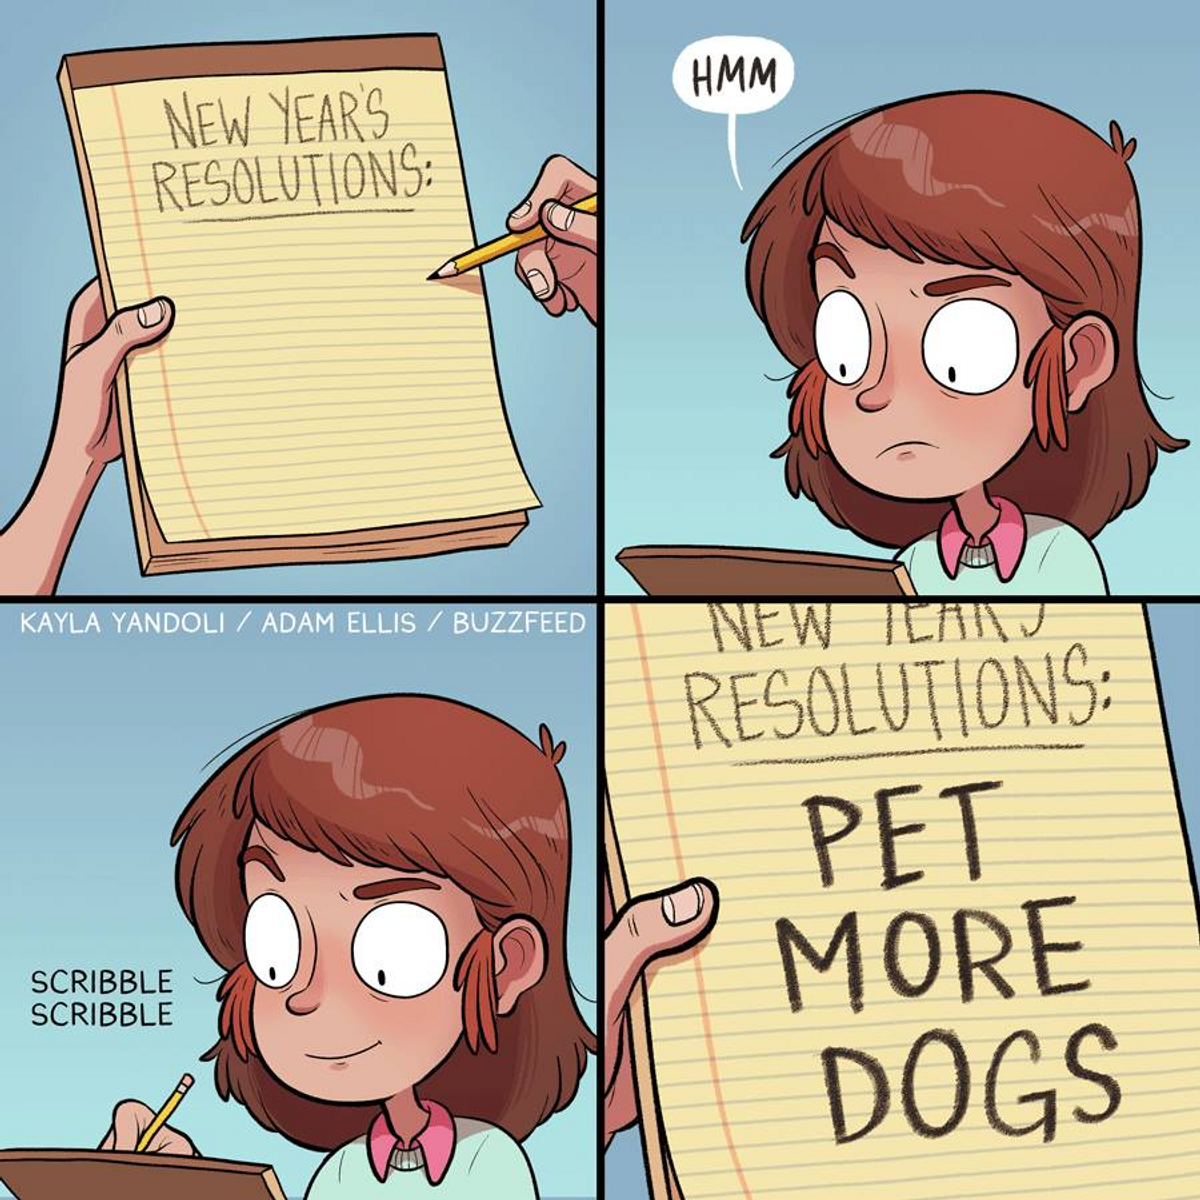 Why I Support Resolutions Not Just At New Years